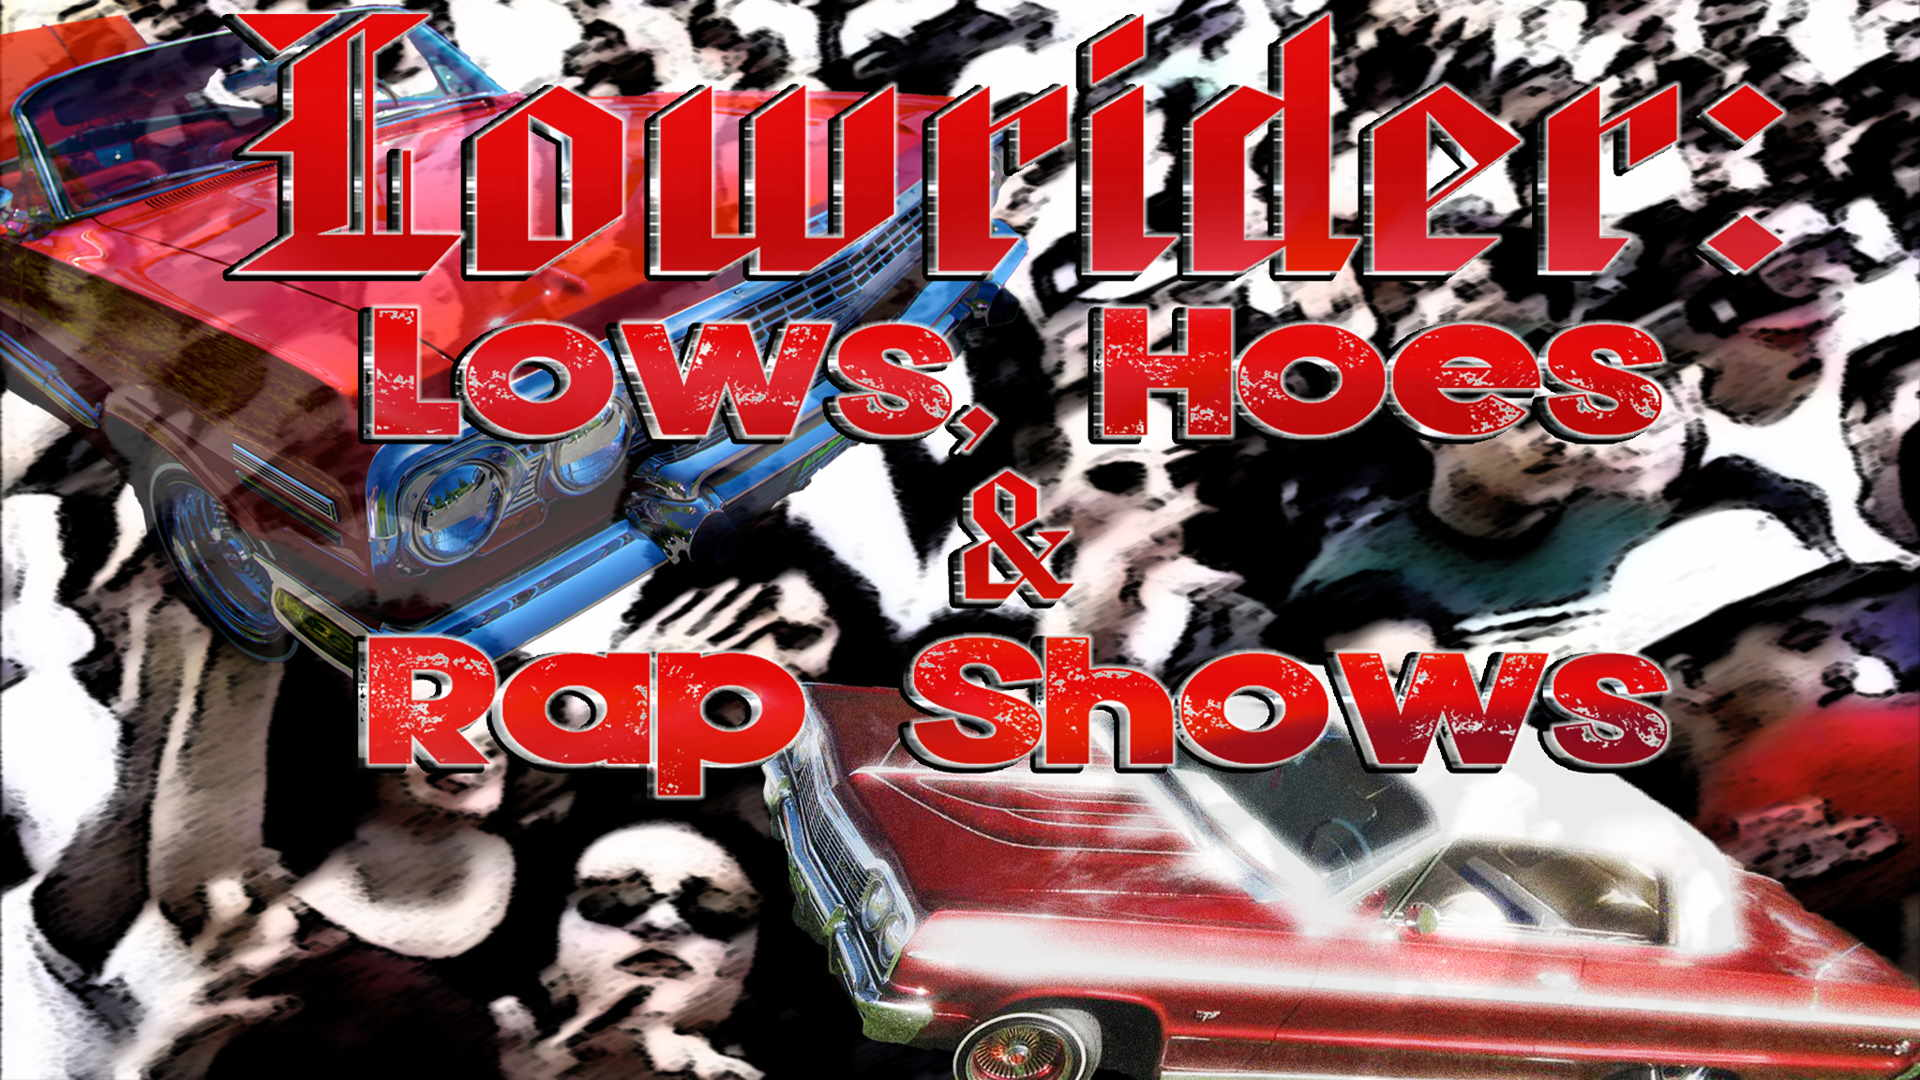 Lowrider Lows Hoes And RapShows